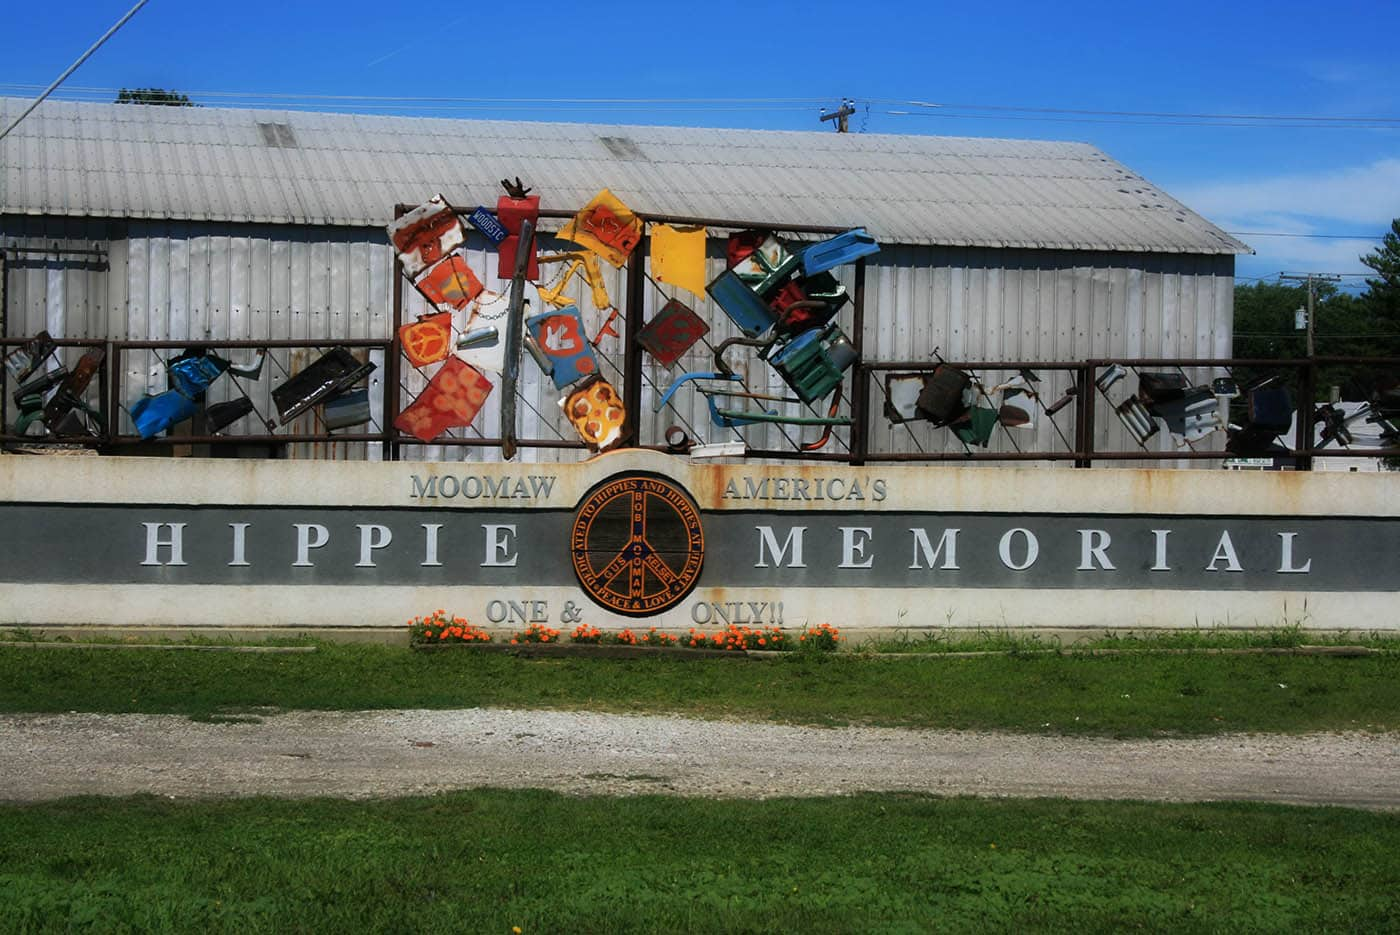 Moomaw America's Hippie Memorial, the one and only Hippie Memorial, a roadside attraction in Arcola, Illinois